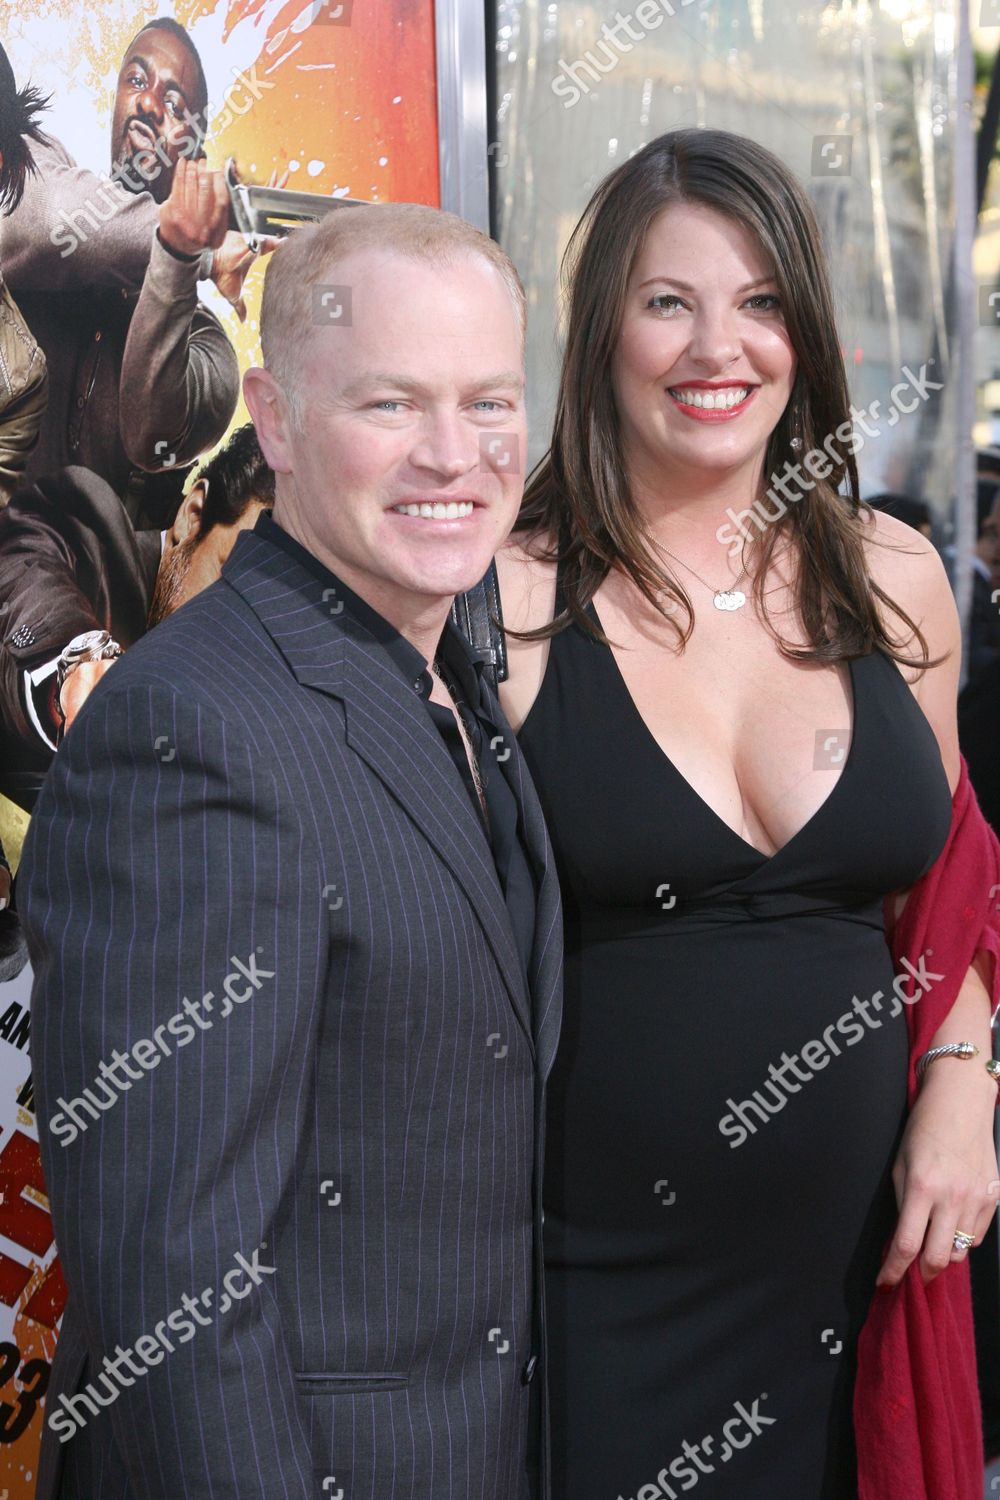 Neal Mcdonough Ruve Robertson Editorial Stock Photo Stock Image Shutterstock View 2 ruve robertson pictures ». https www shutterstock com editorial image editorial the losers film premiere los angeles america 20 apr 2010 1171150bd